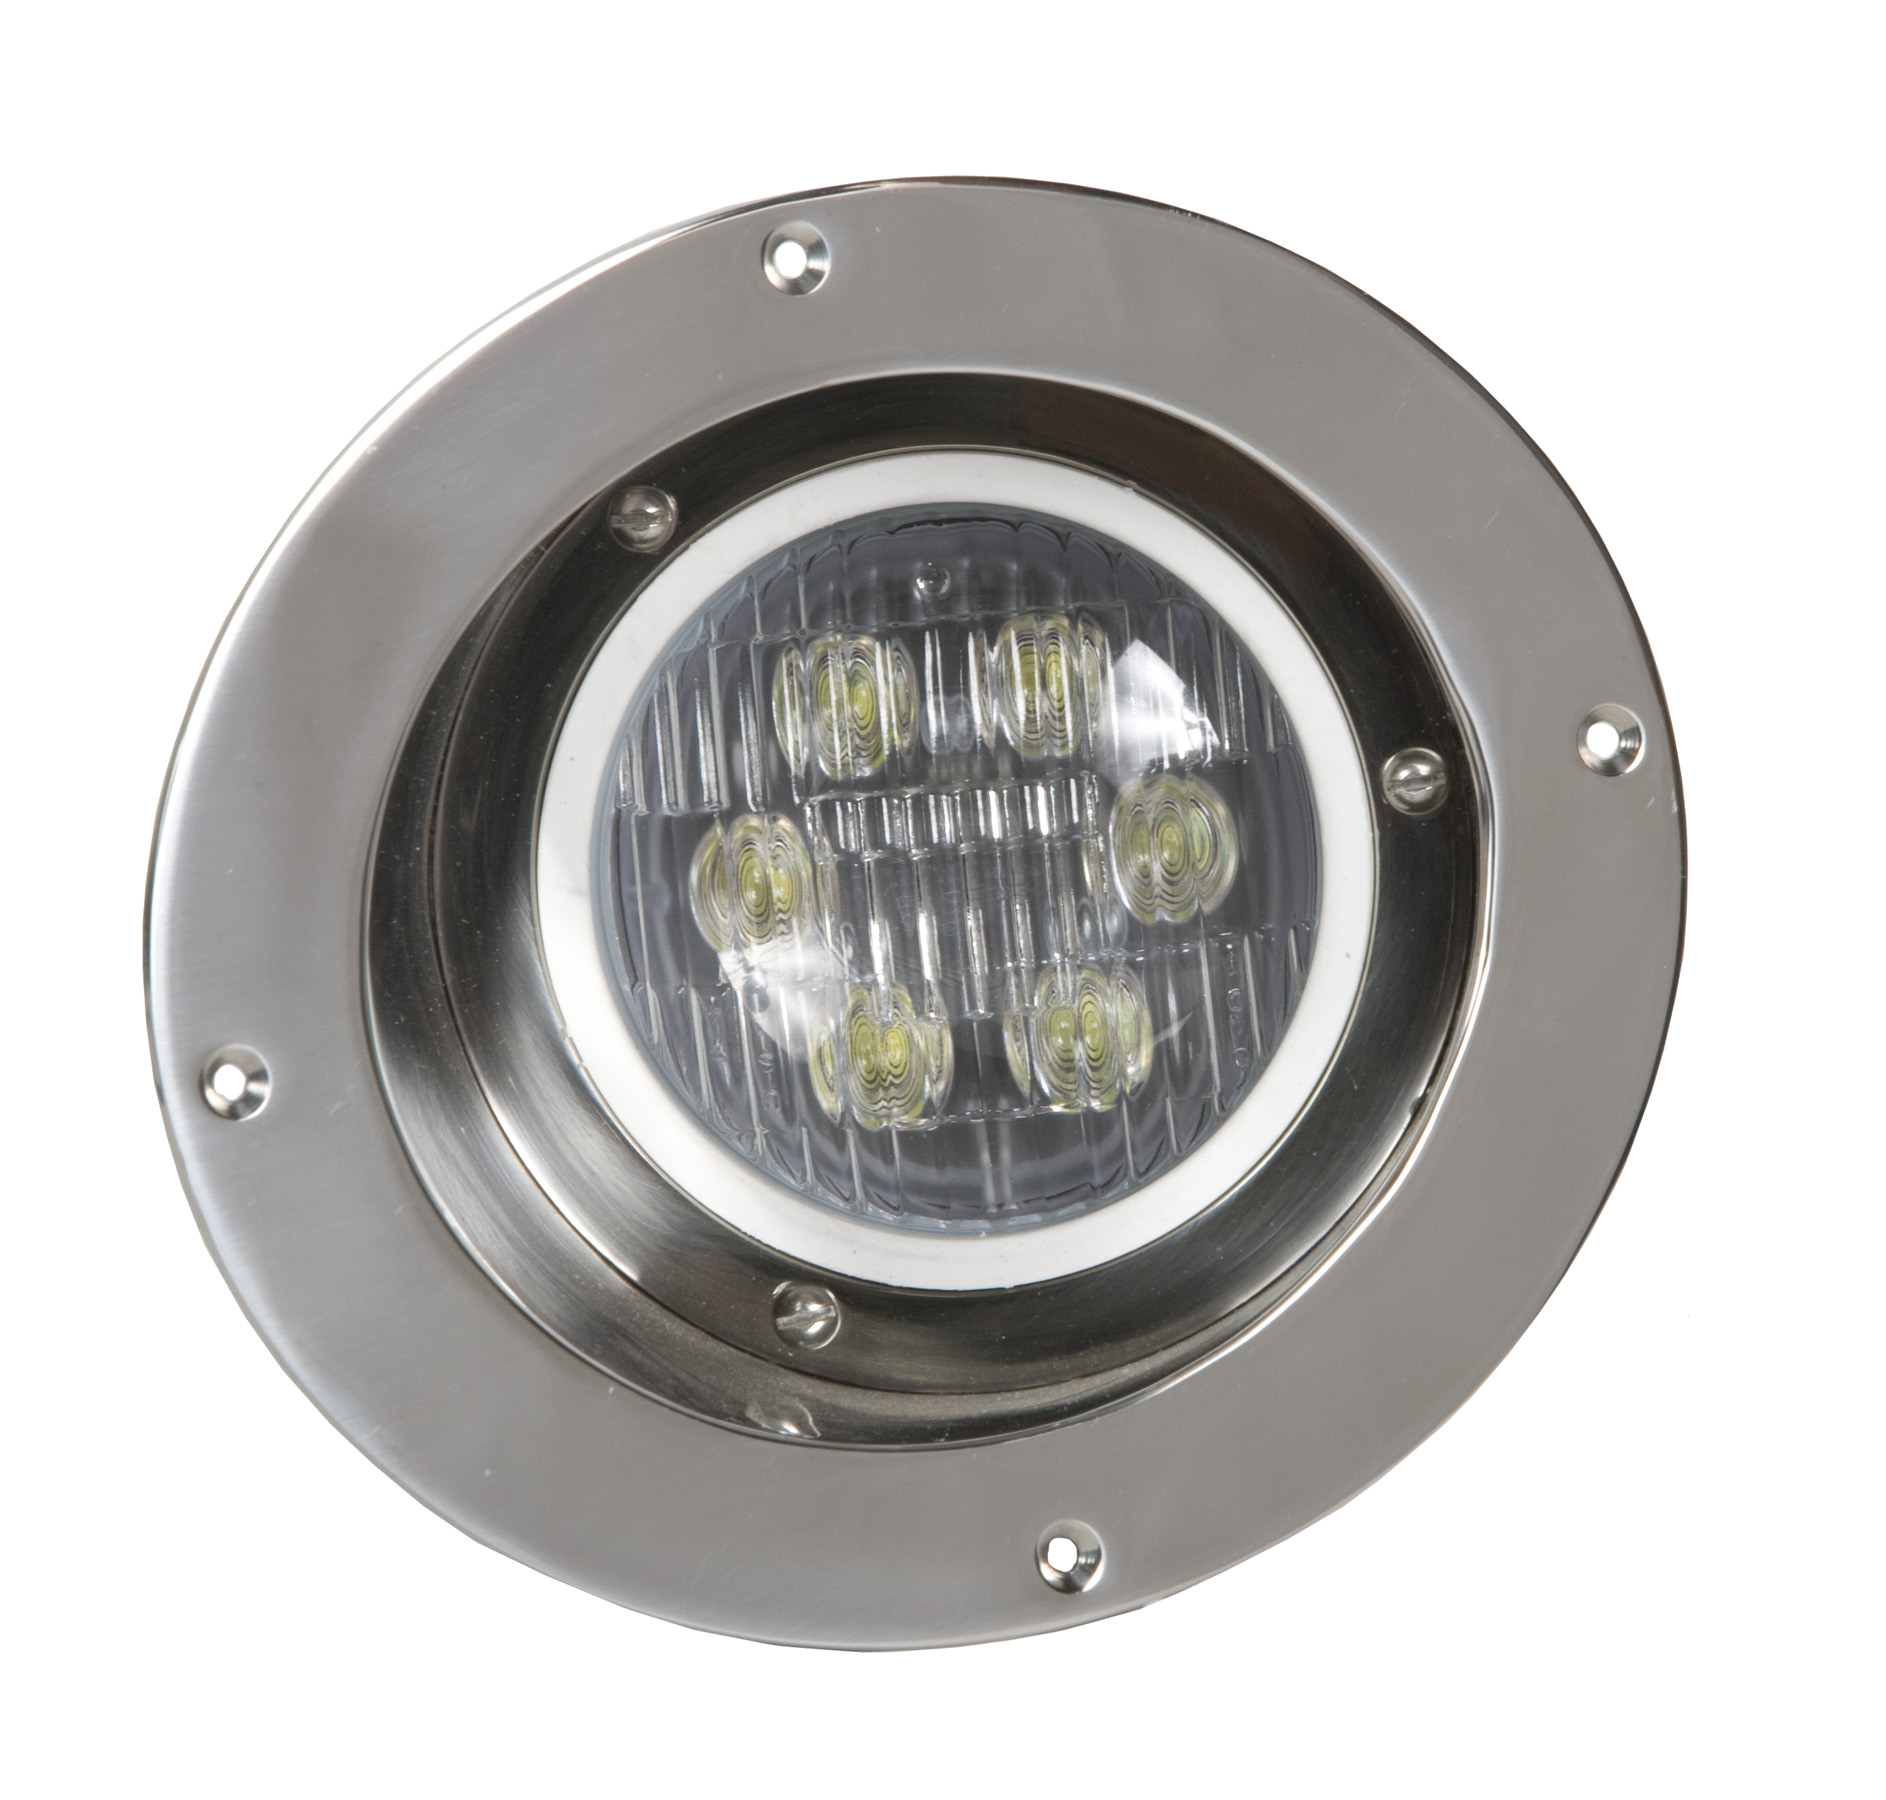 Stainless Steel Parking Light – LED